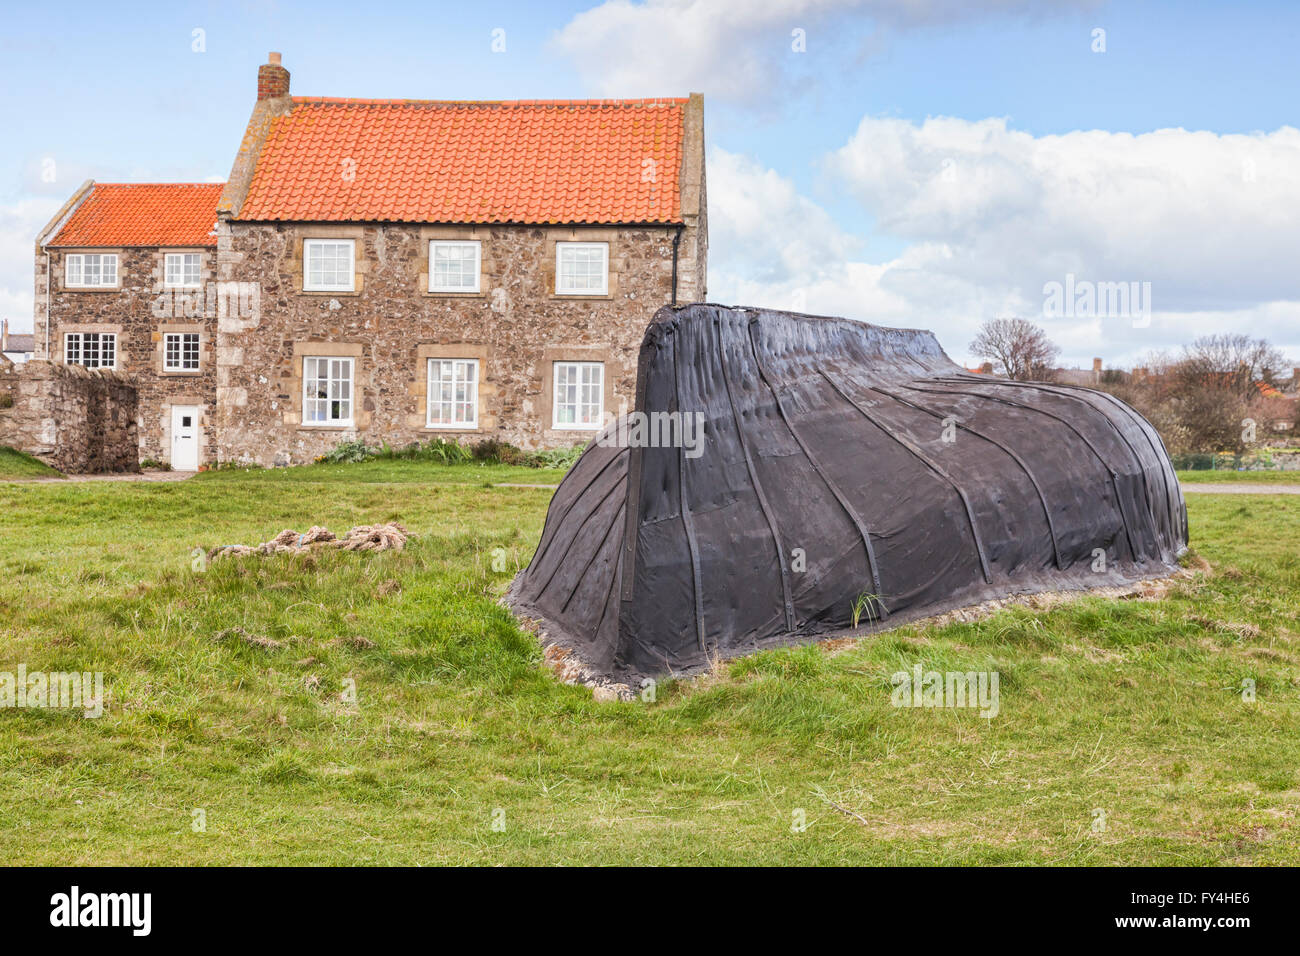 Upside down boat used as a shed, Lindisfarne, Northumberland, England, UK - Stock Image